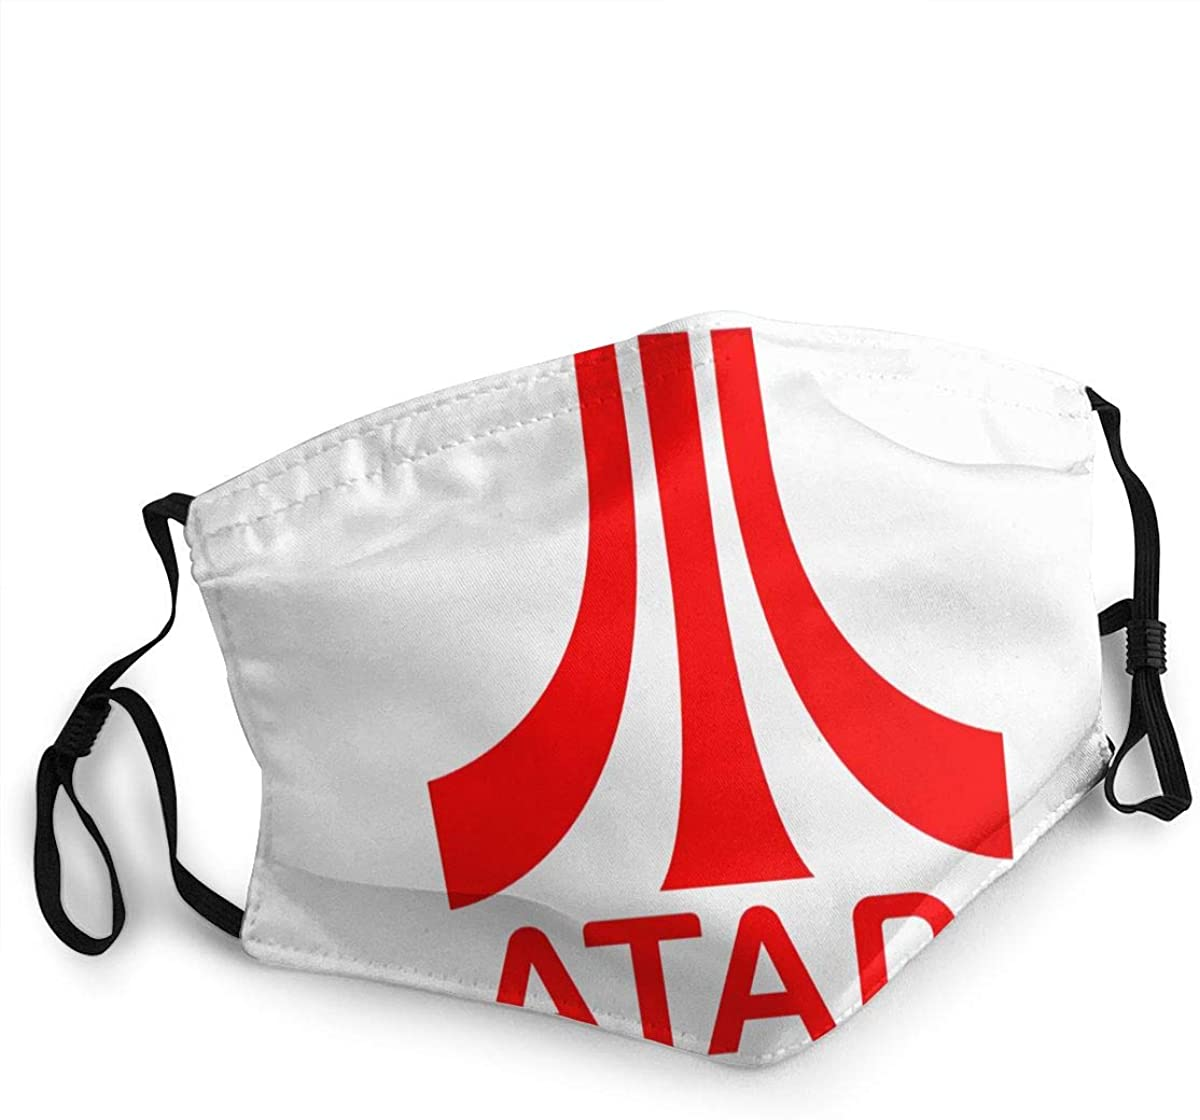 Atari Very Soft, Breathable, Water-Repellent, Washable, Adjustable Elasticity With Buckle